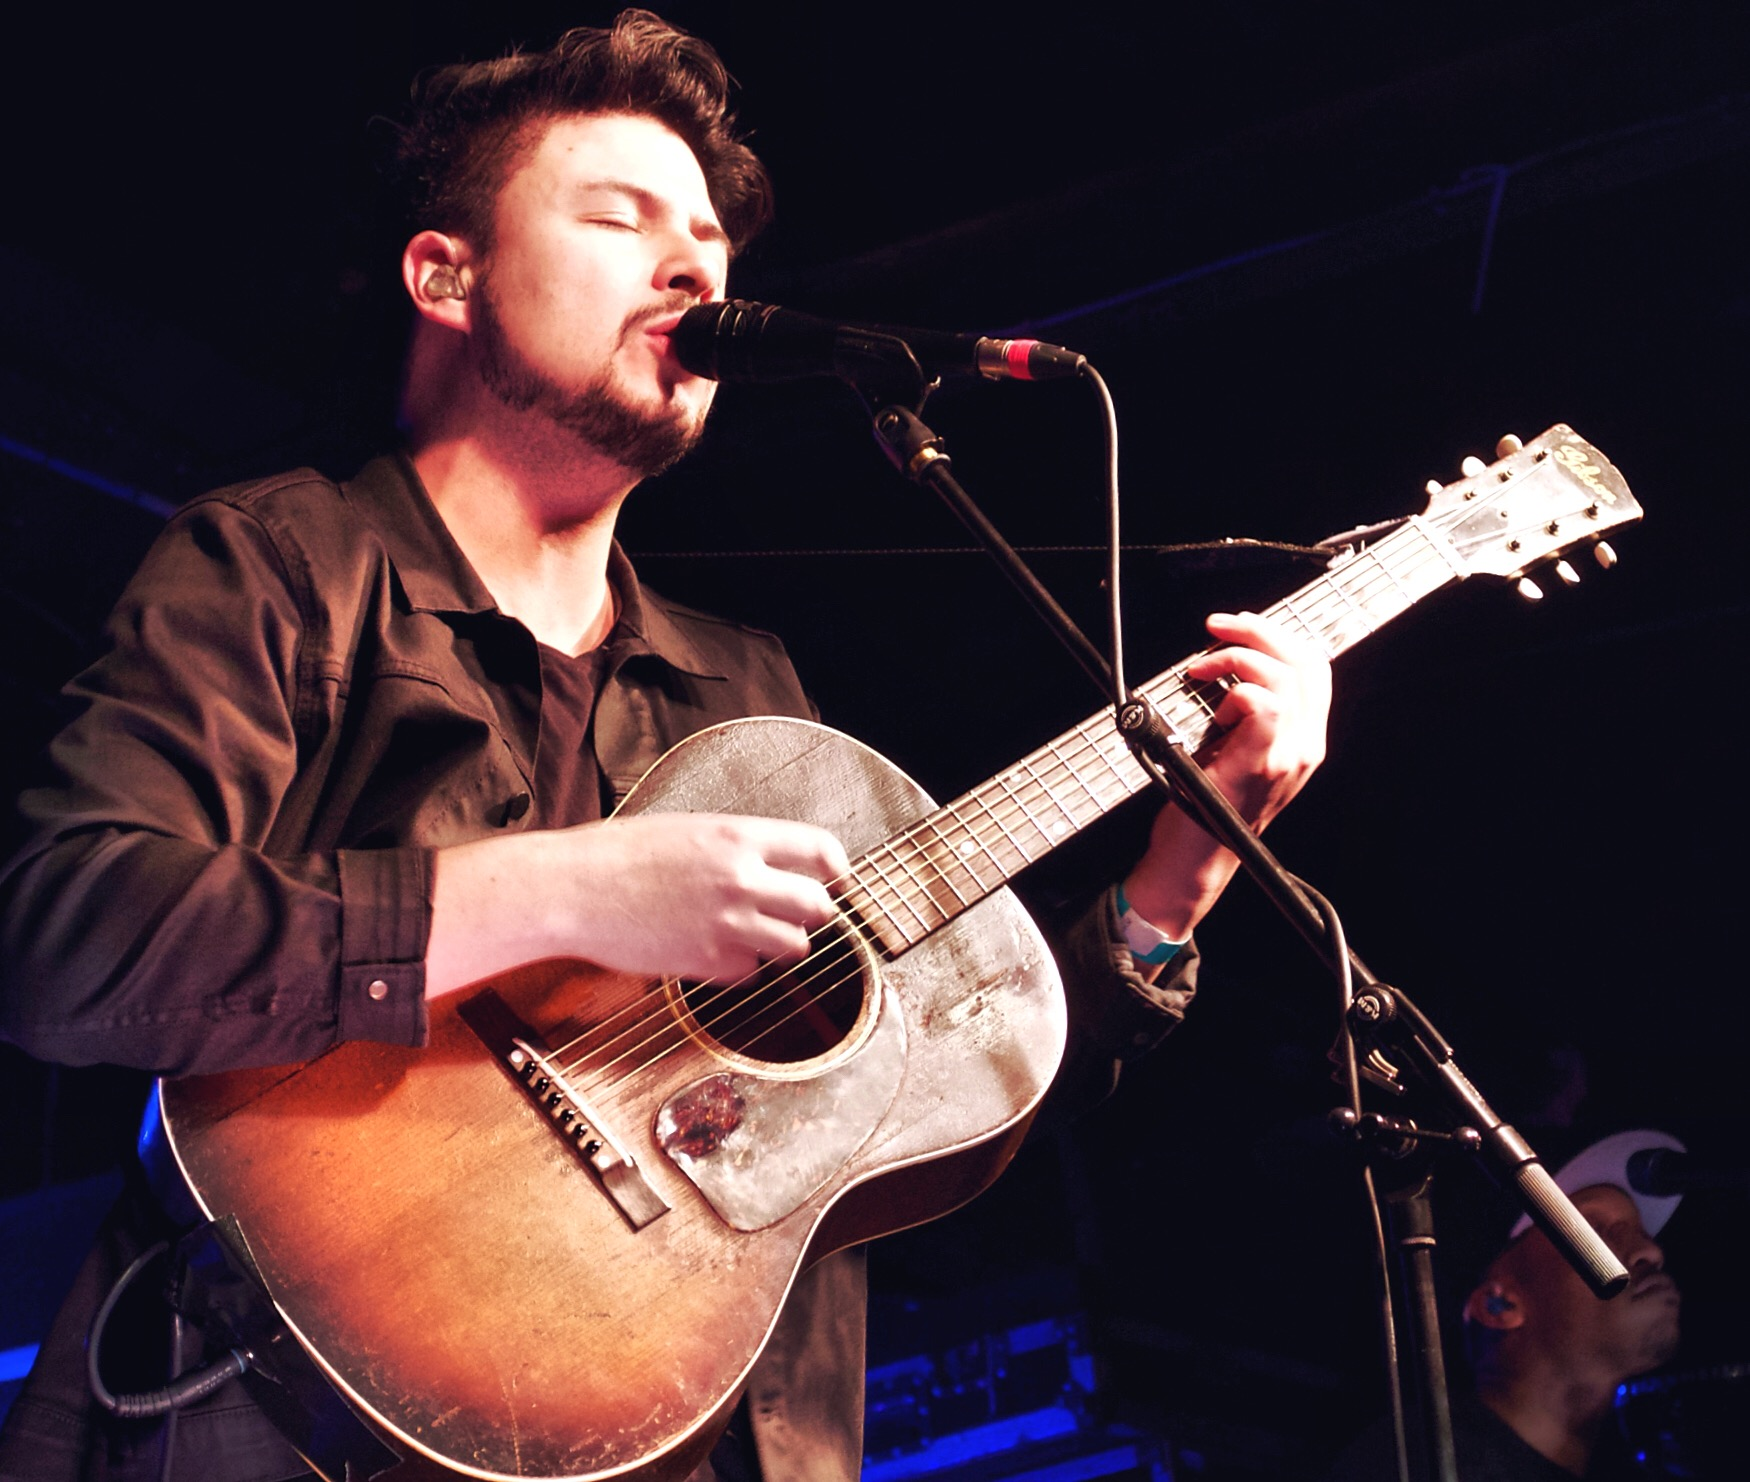 Review: Jamie Woon at Plug, Sheffield